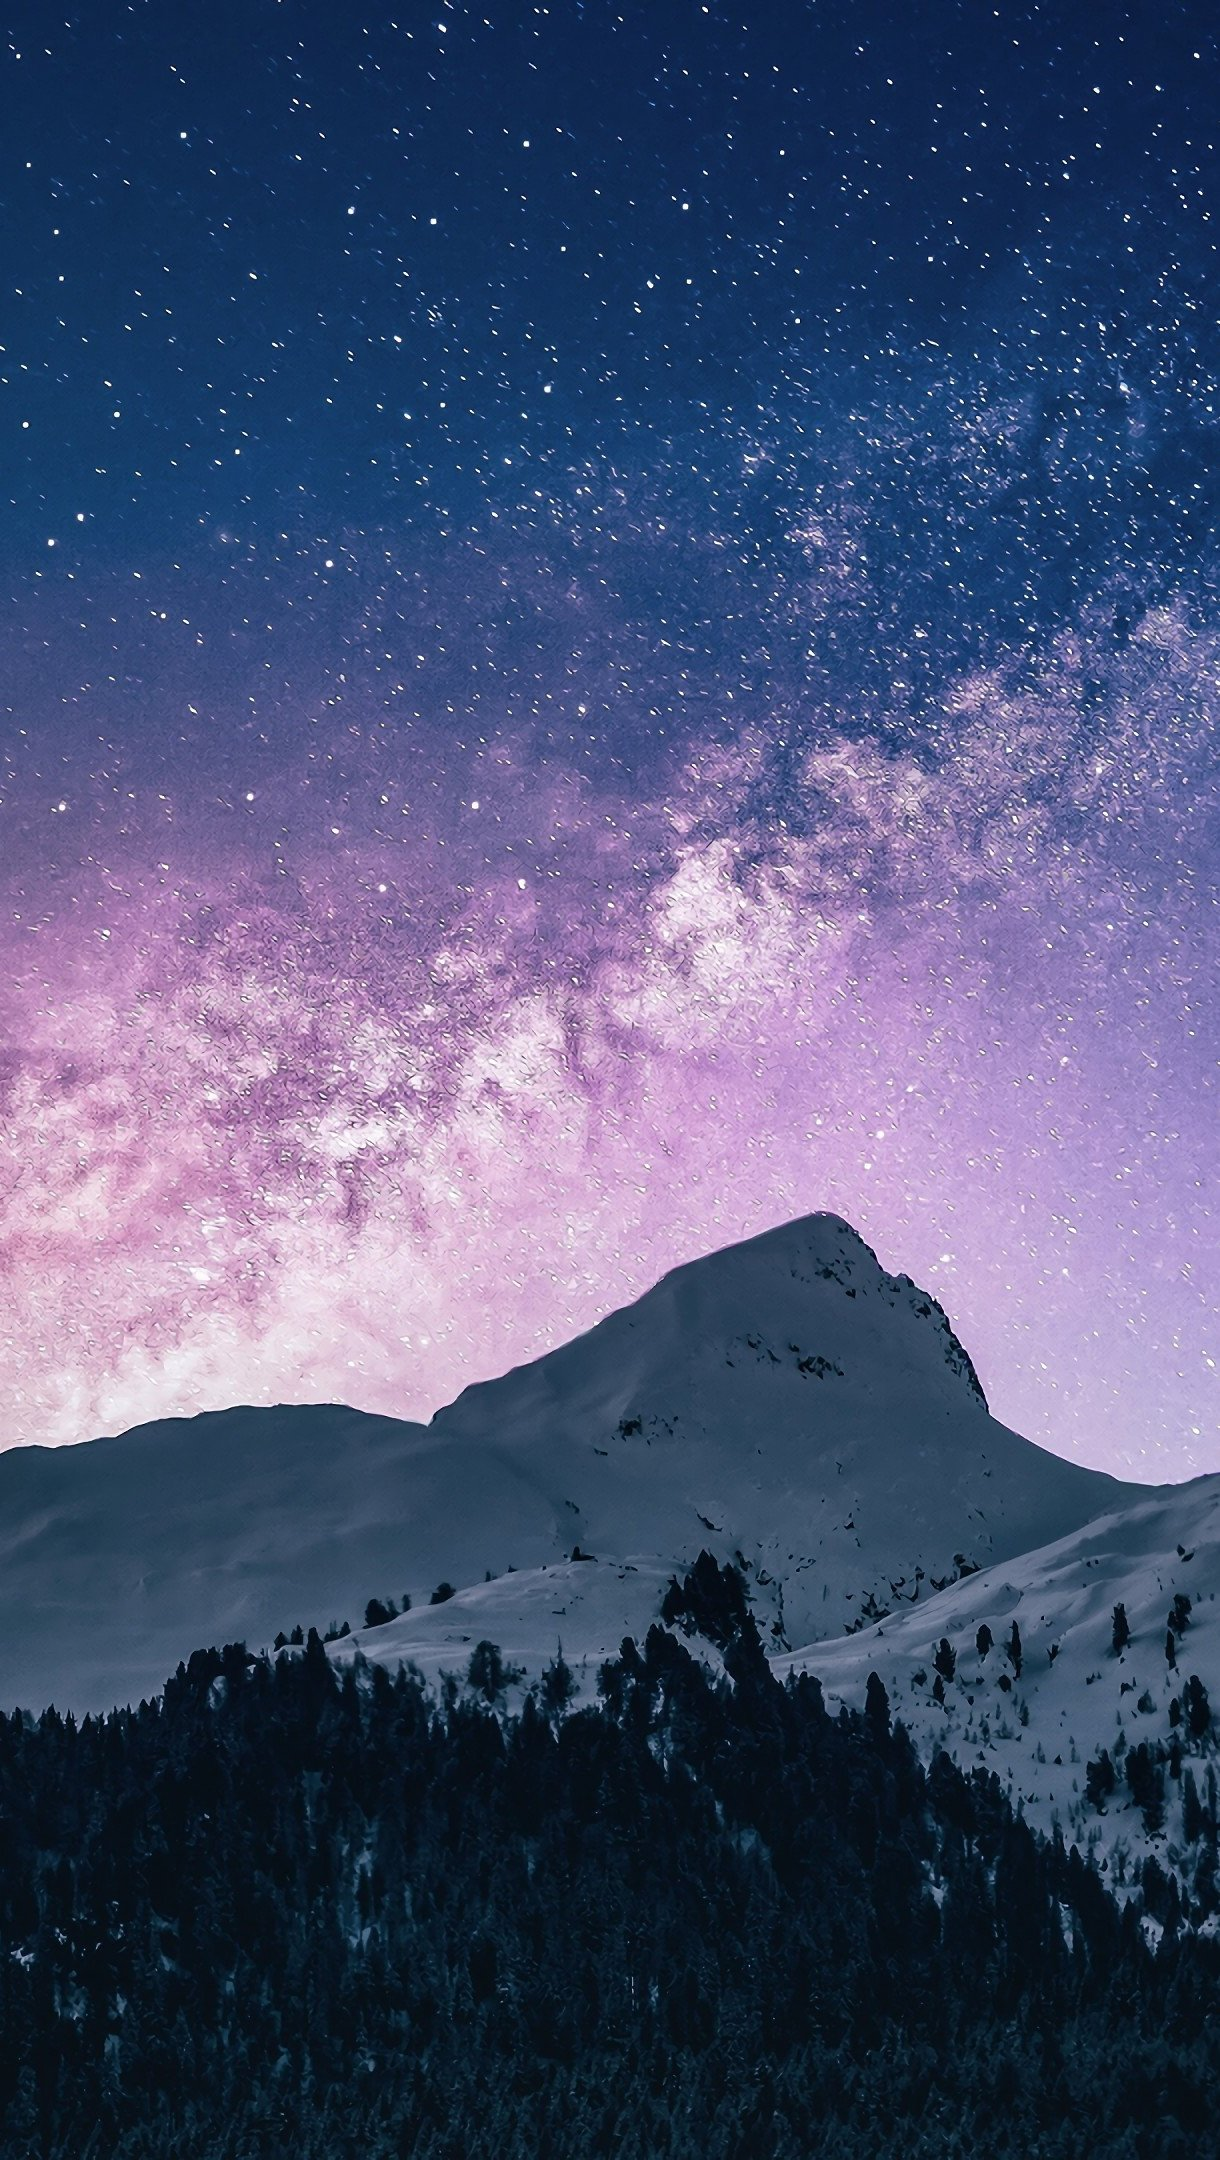 Wallpaper Snowy mountains sky with stars and comet Vertical